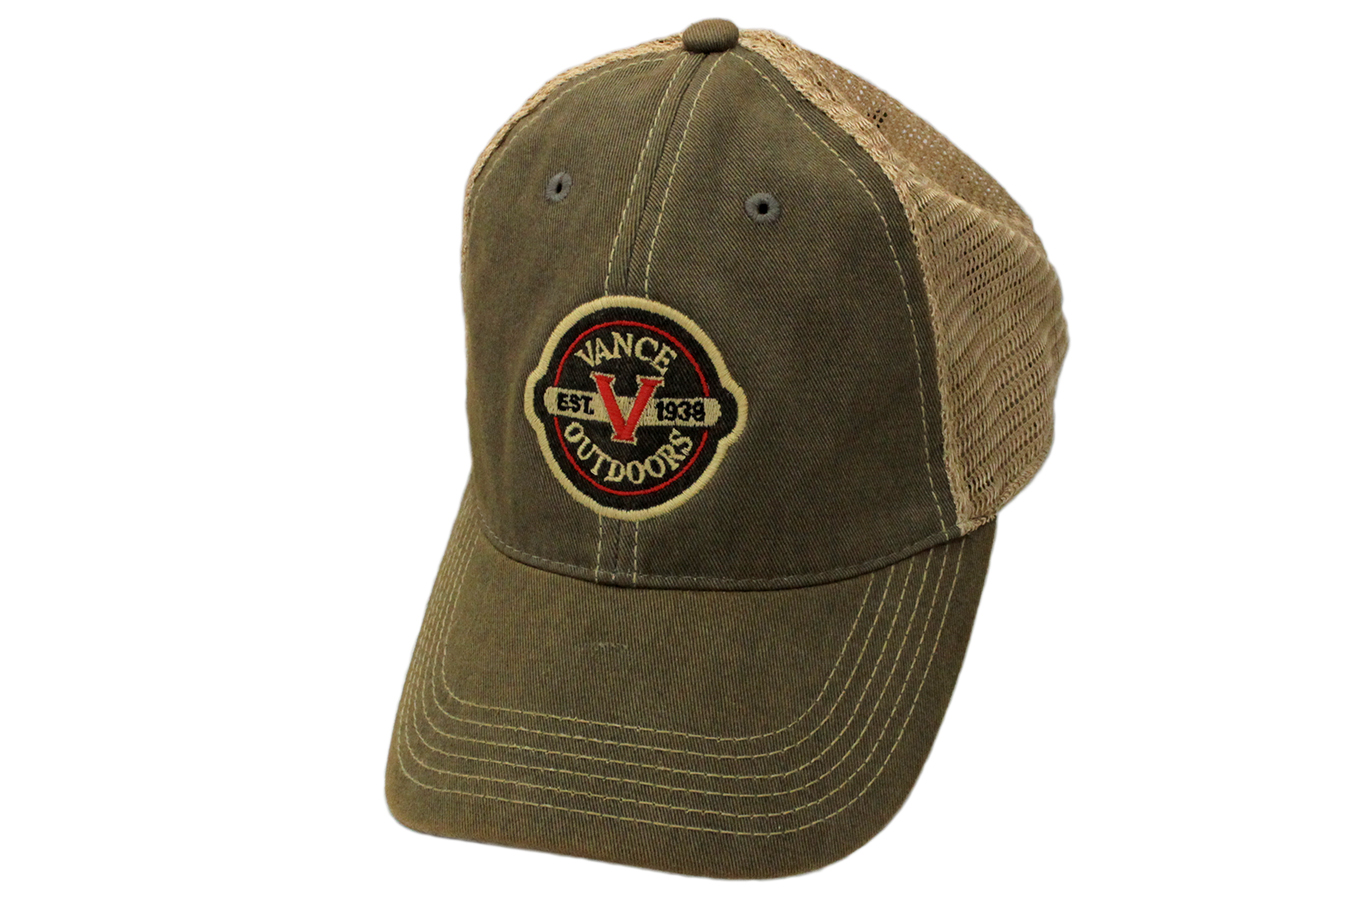 Vance Outdoors Apparel Olive Trucker Hat with Logo  9d955a6342e